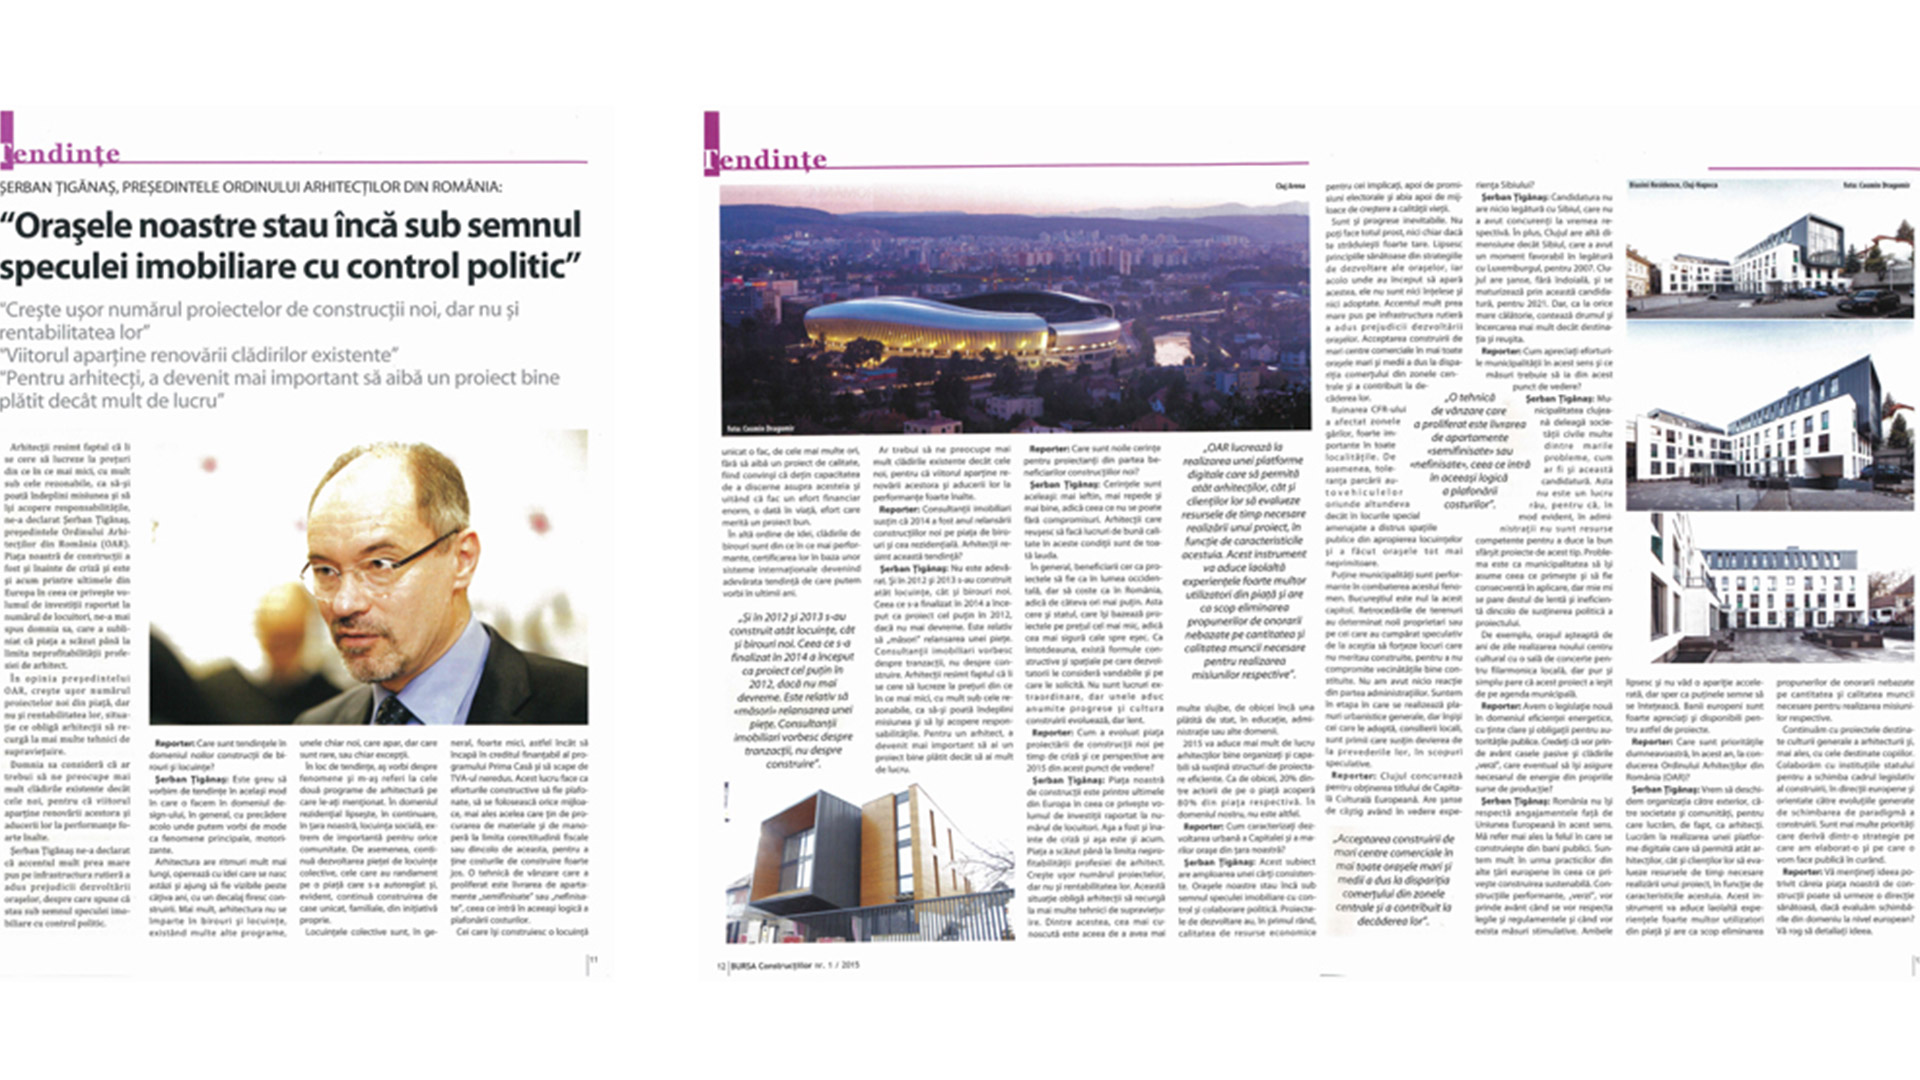 Bursa Construcțiilor no.1, Article by Șerban Țigănaș, 2015